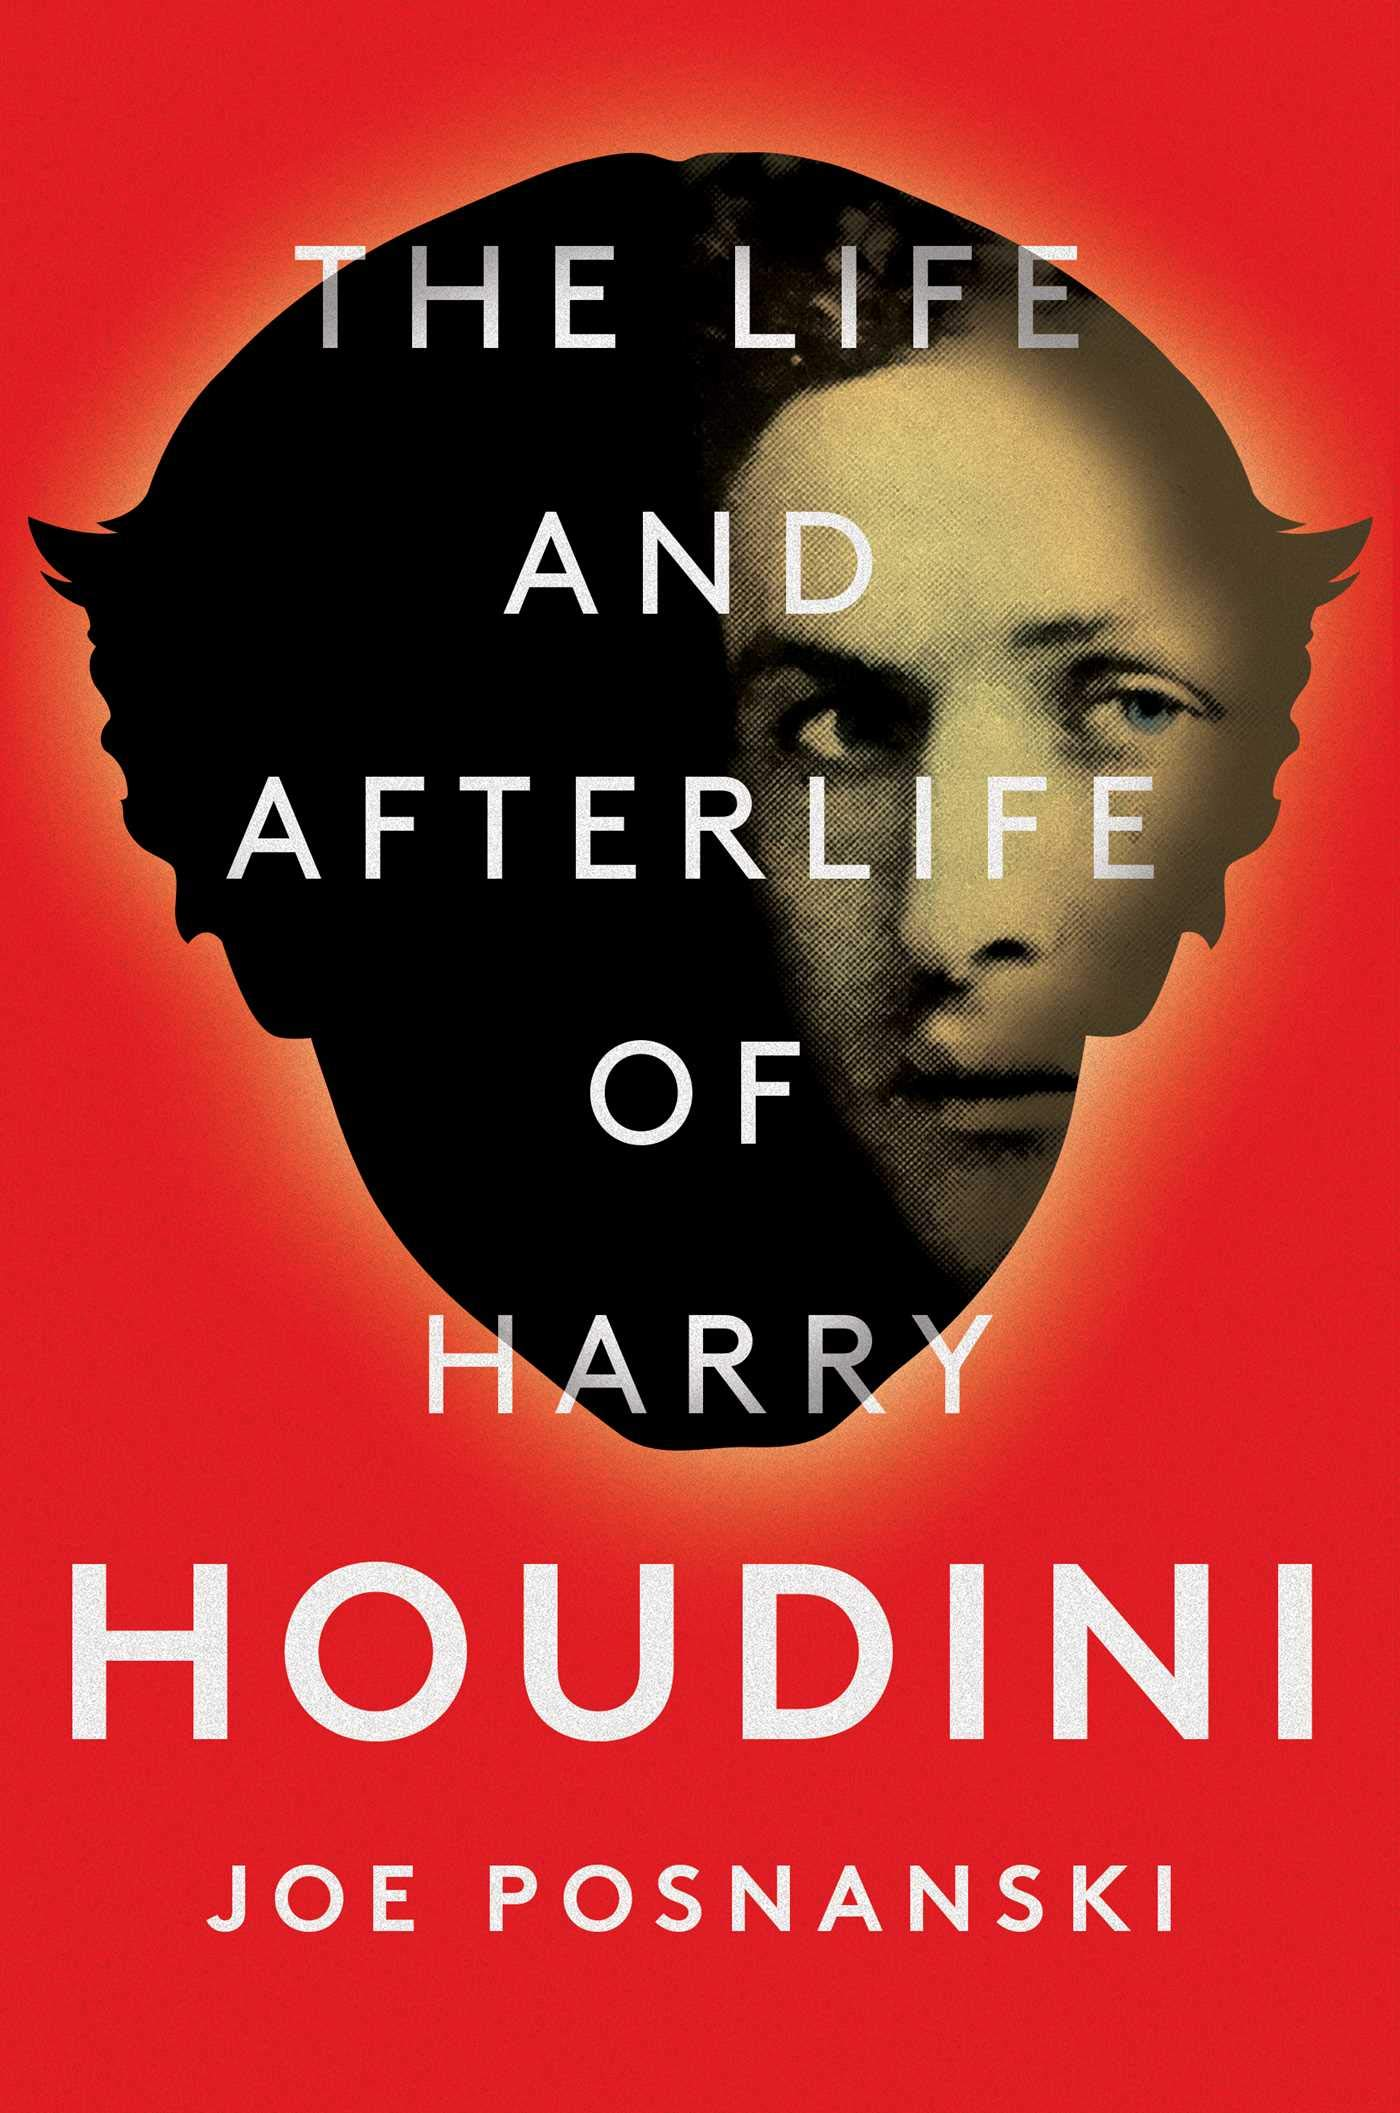 What Harry Houdini Has in Common With Donald Trump and Tom Brady